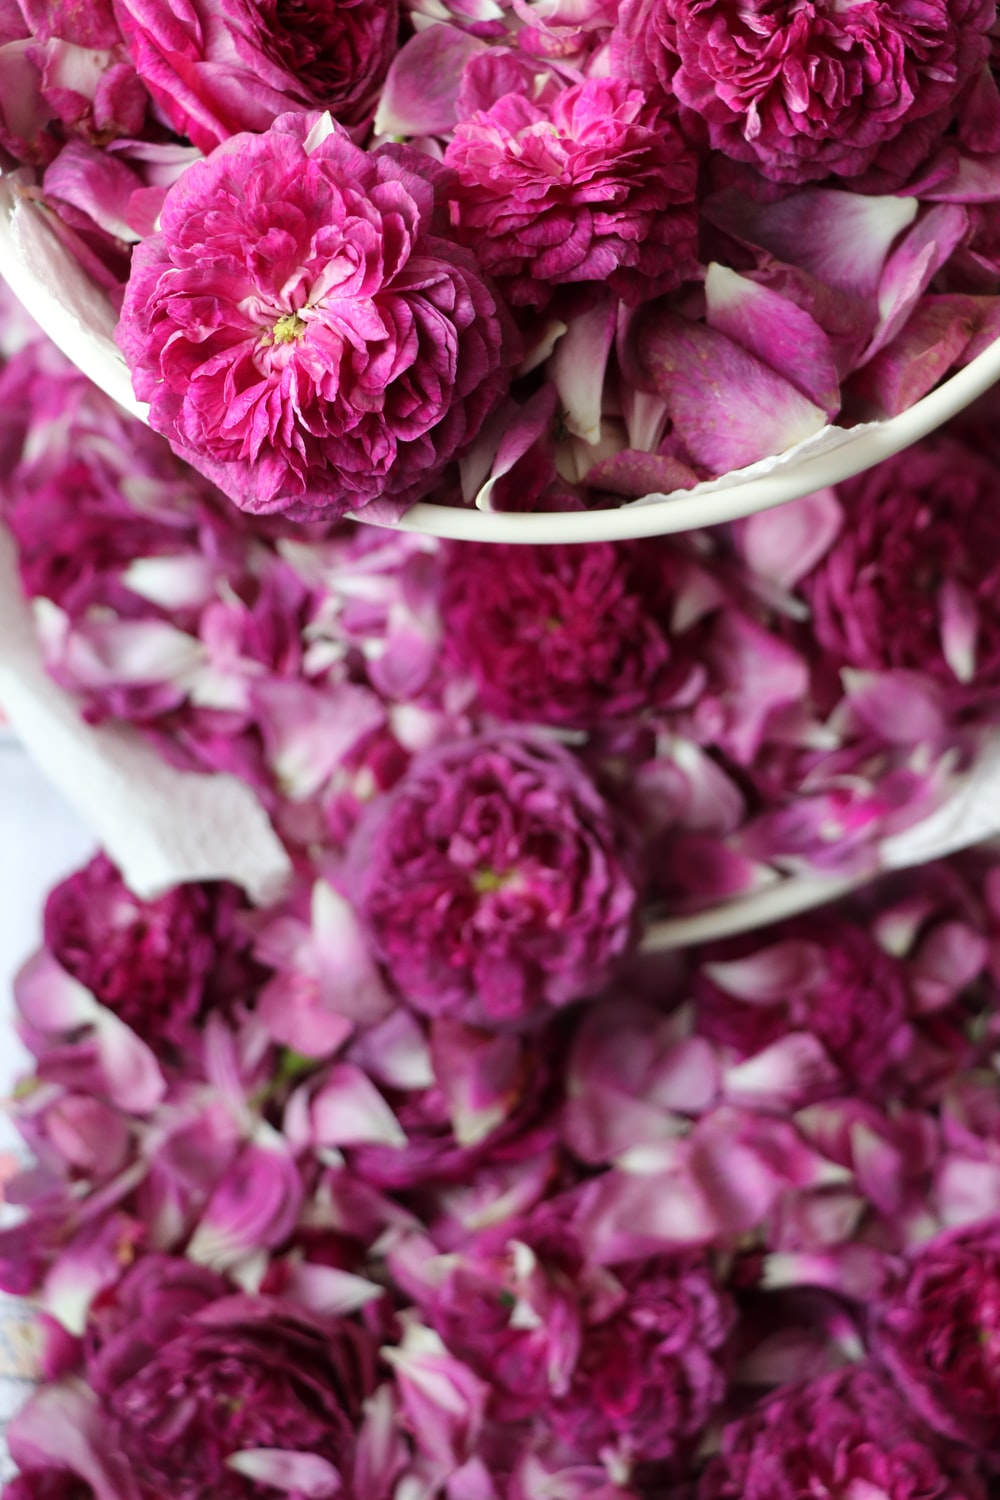 pink flowers on white surface